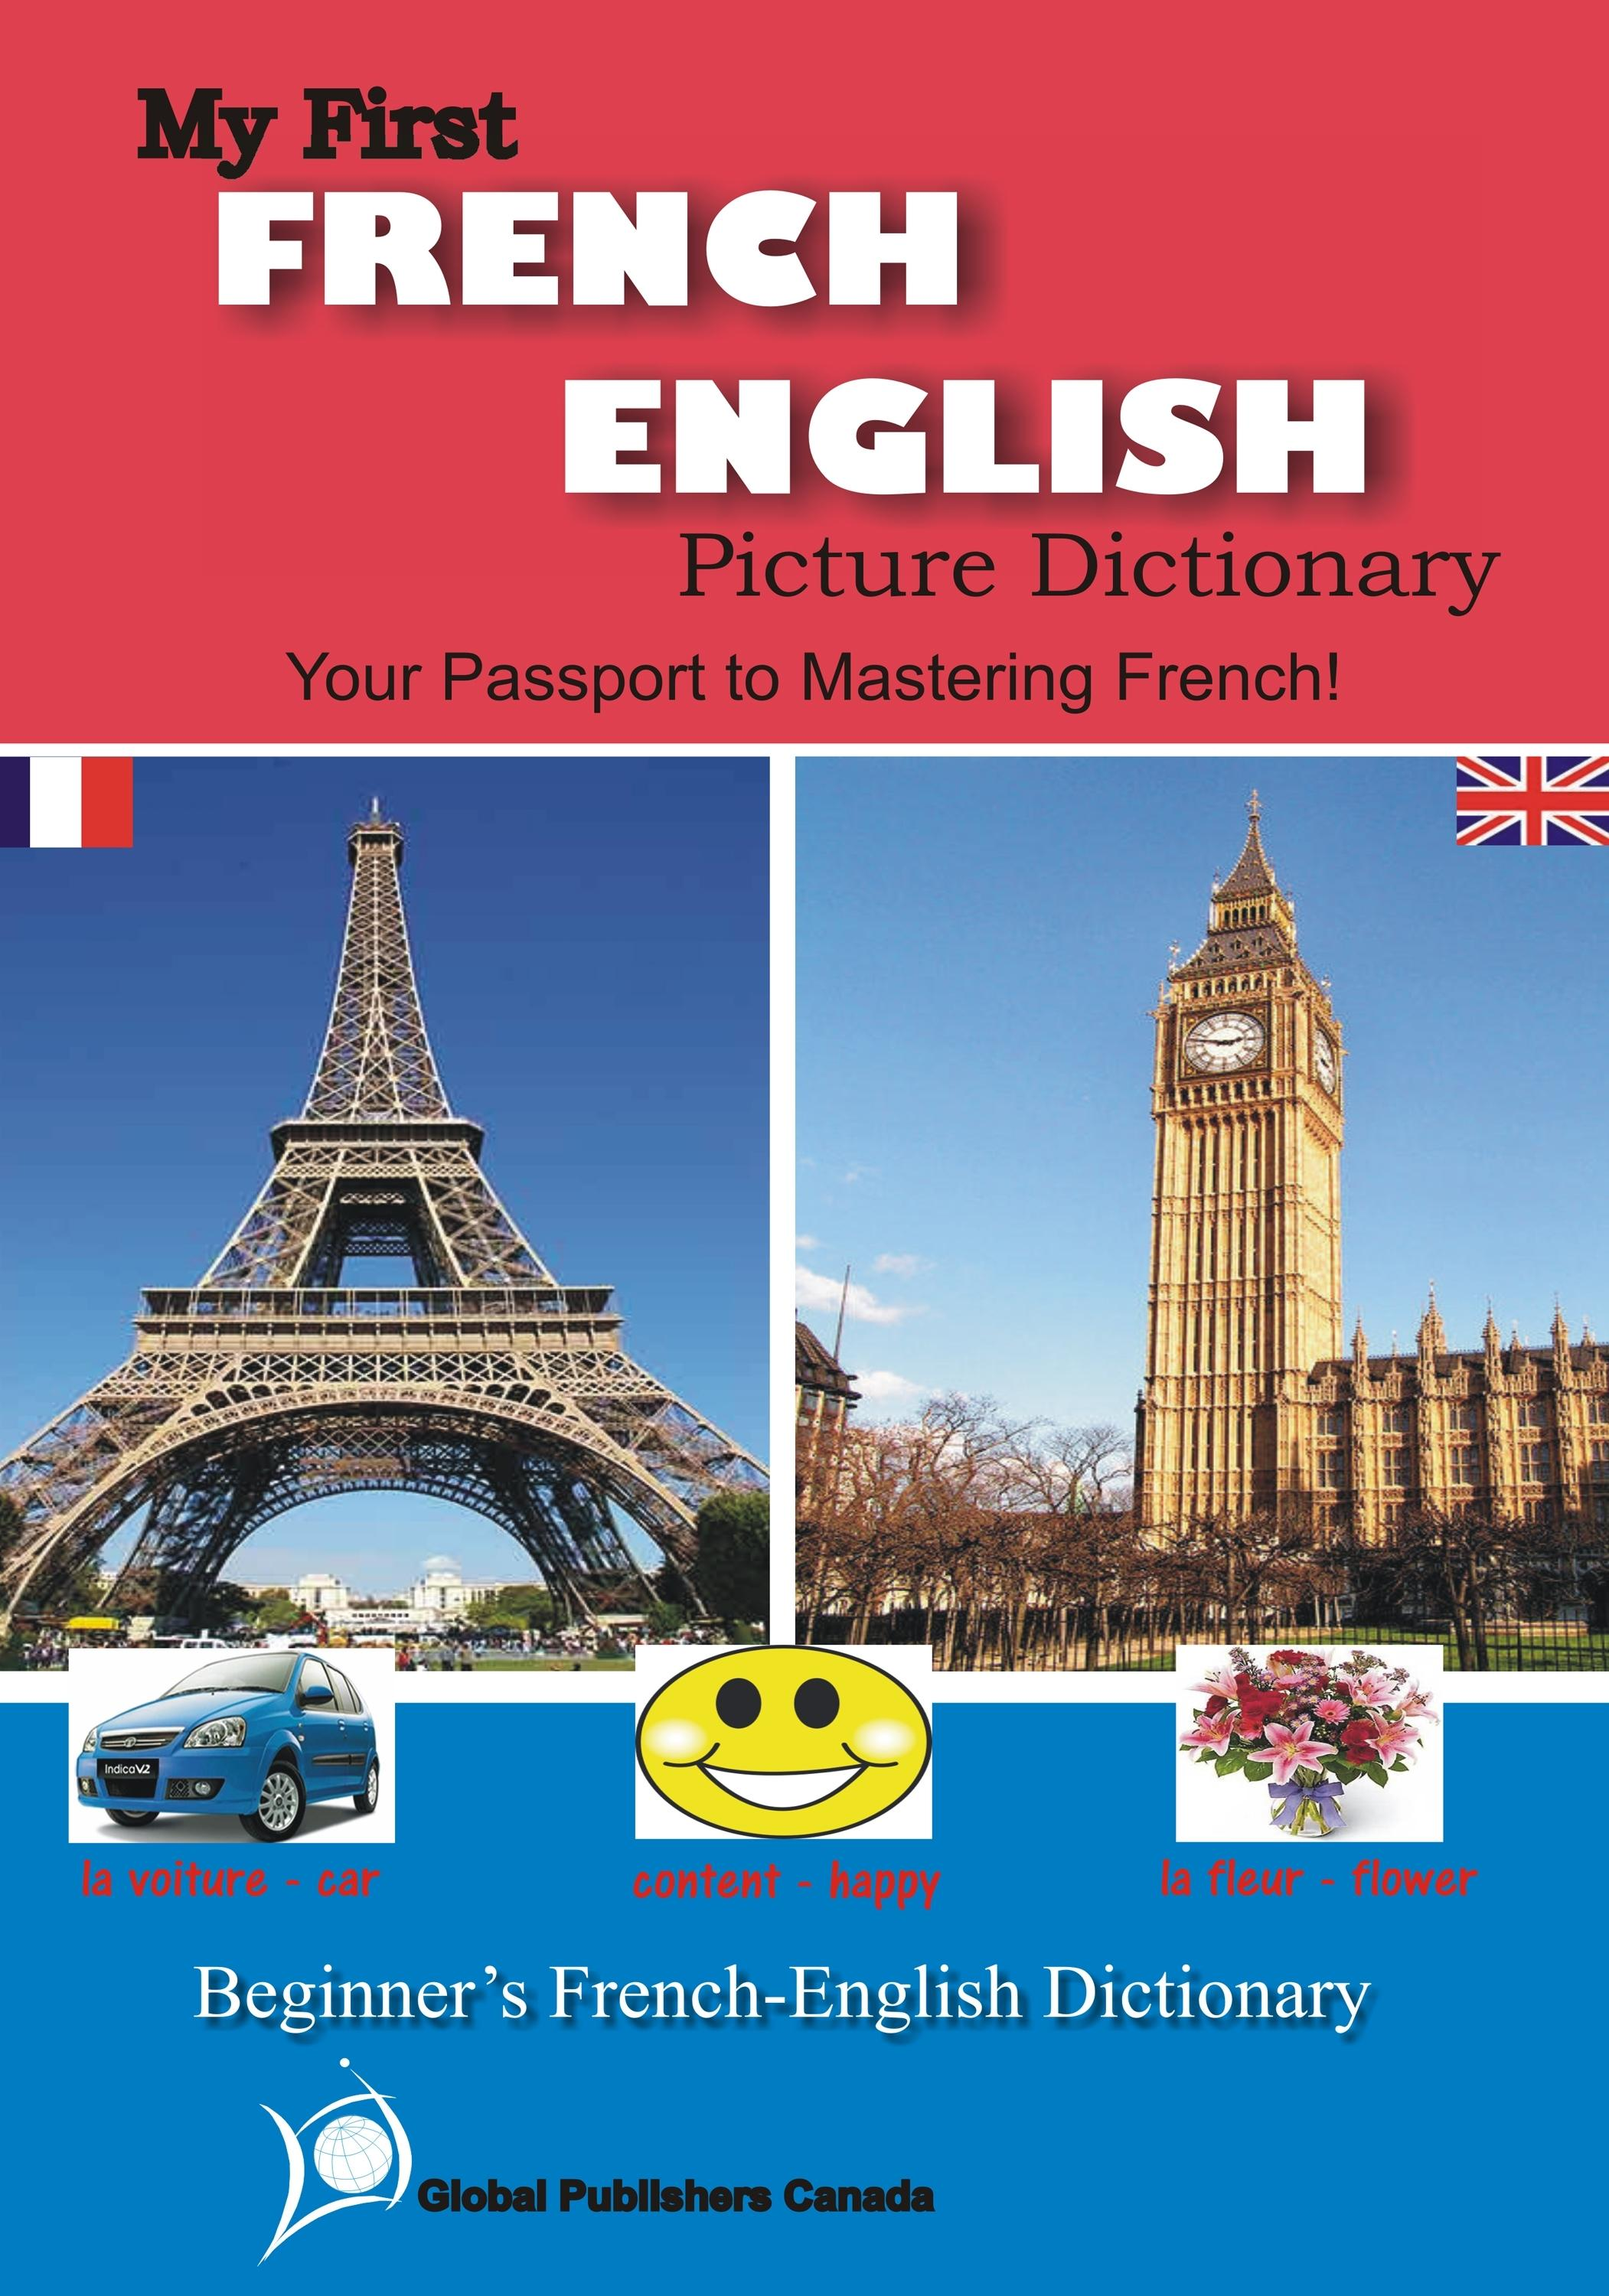 French-English dictionary for Beginners